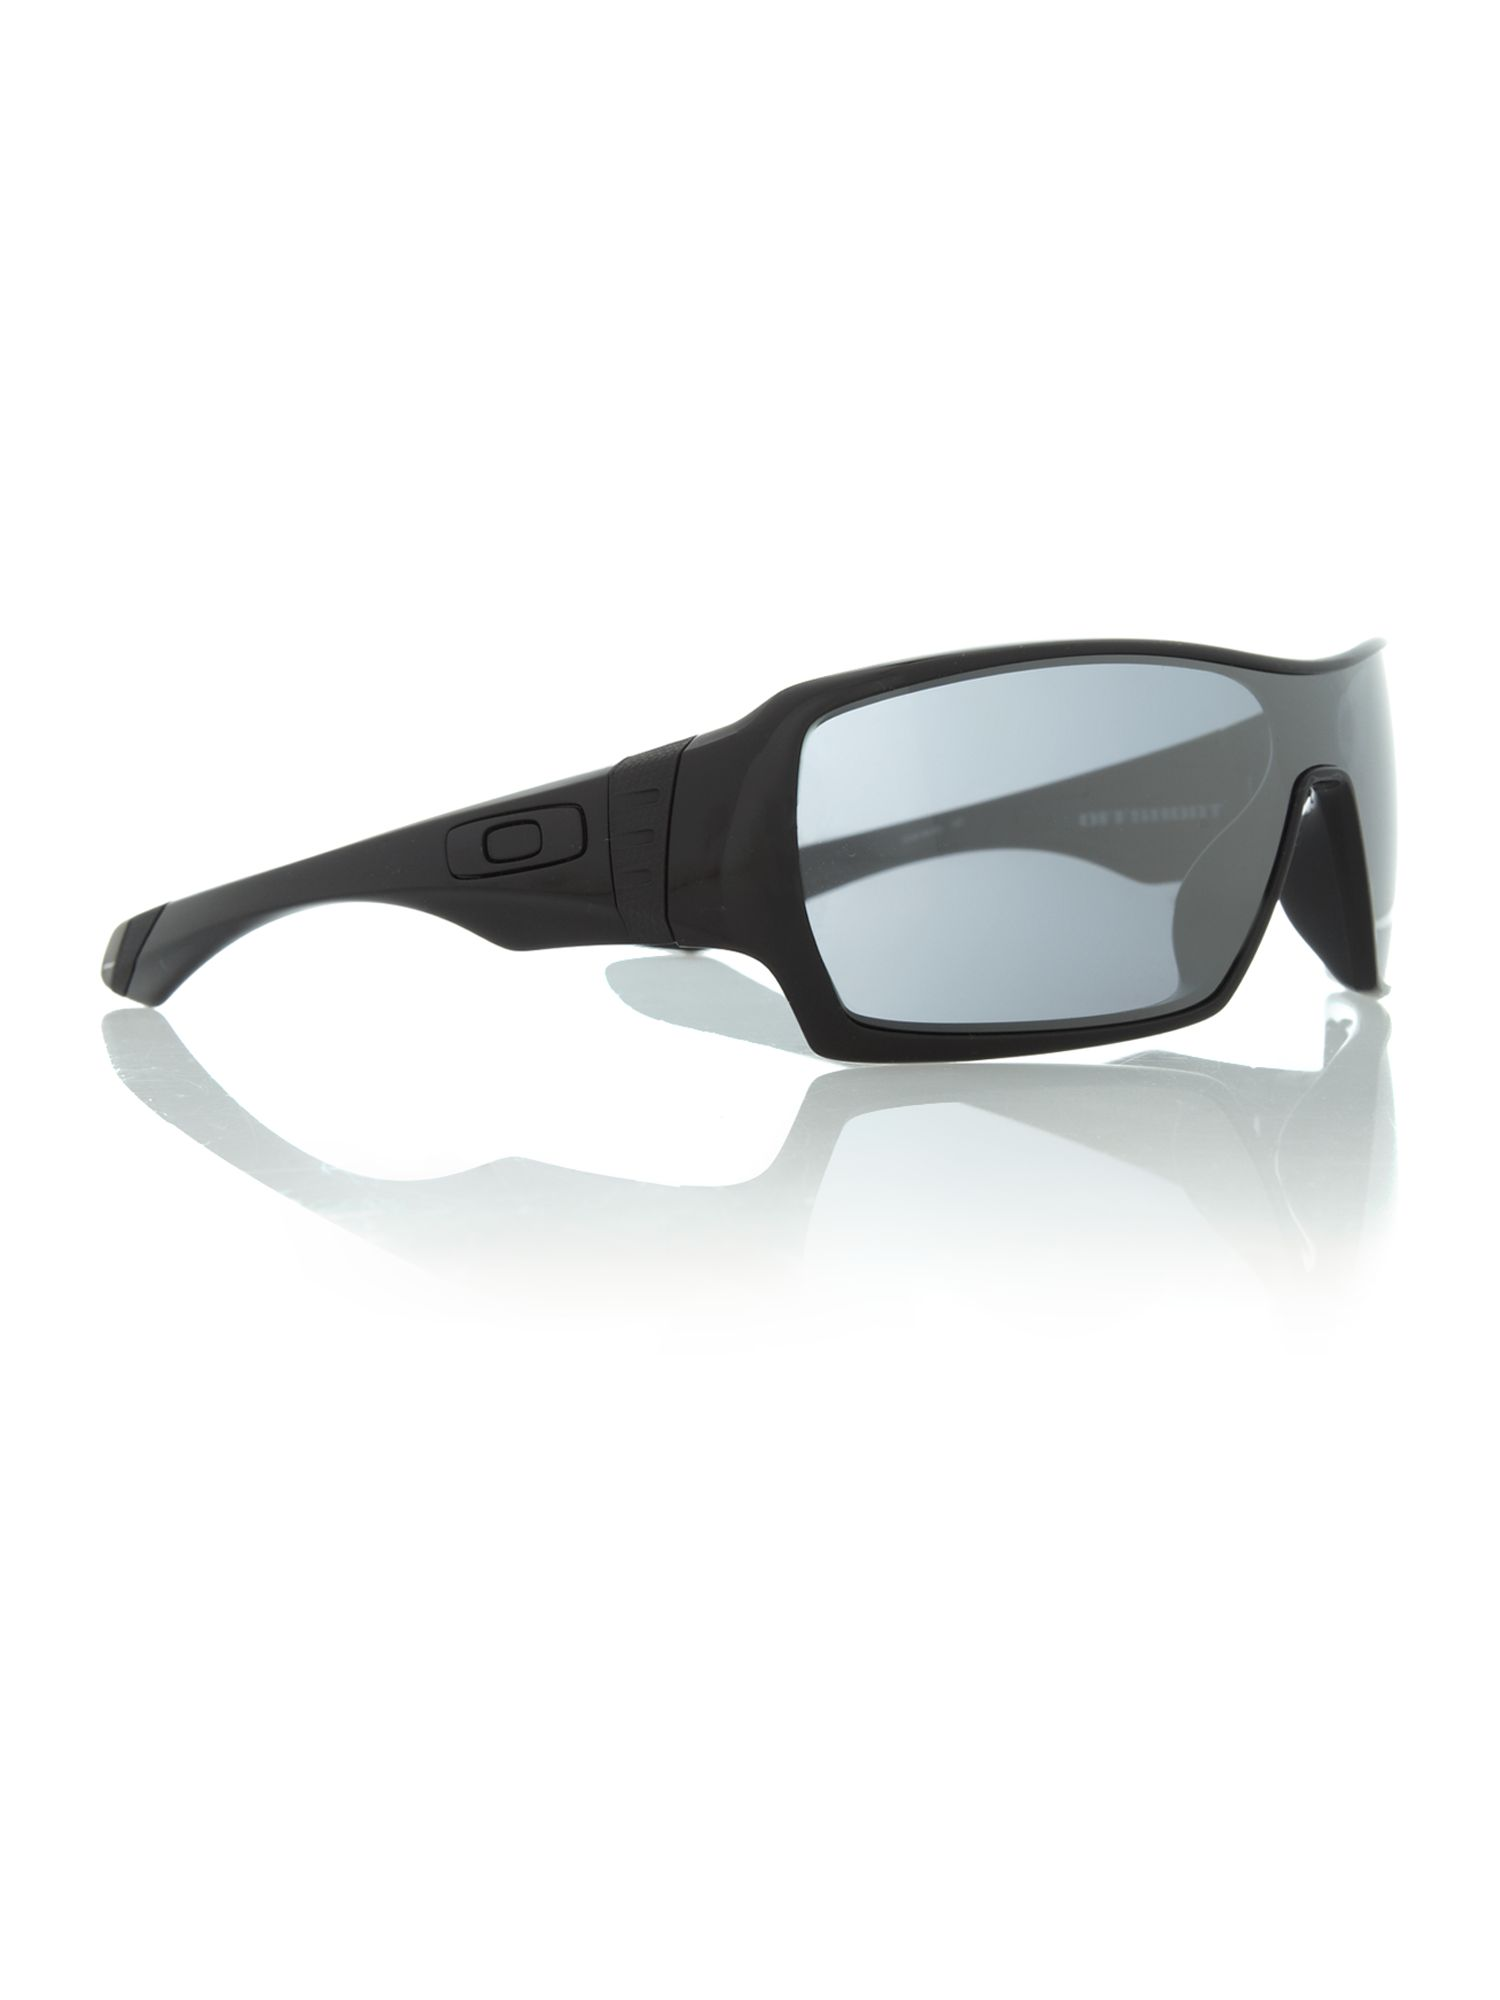 Oakley men`s OO9190 black offshoot sunglasses